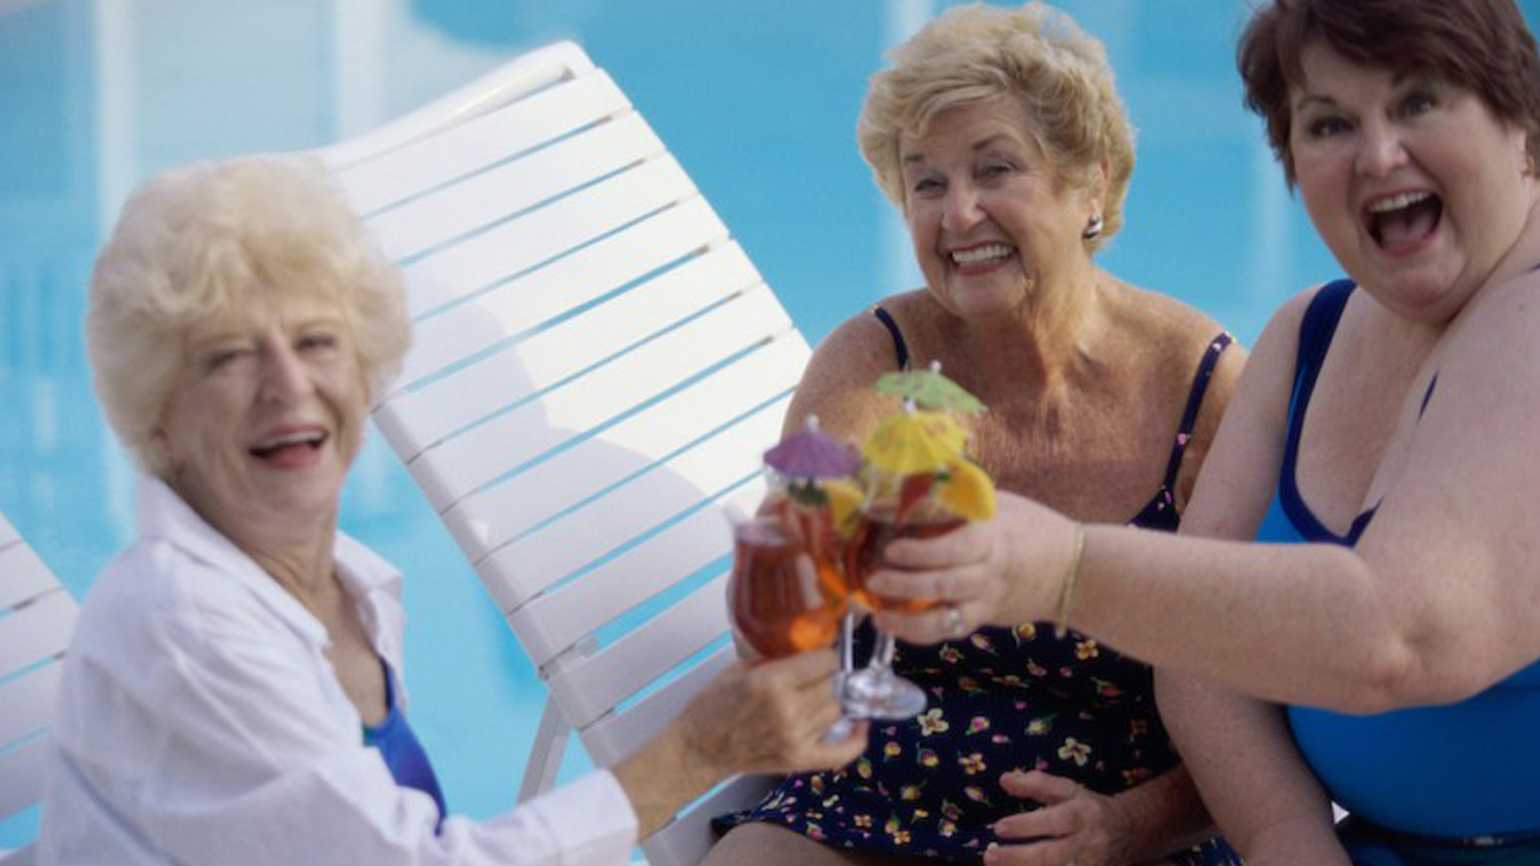 A group of senior citizen women enjoying themselves by the pool side.